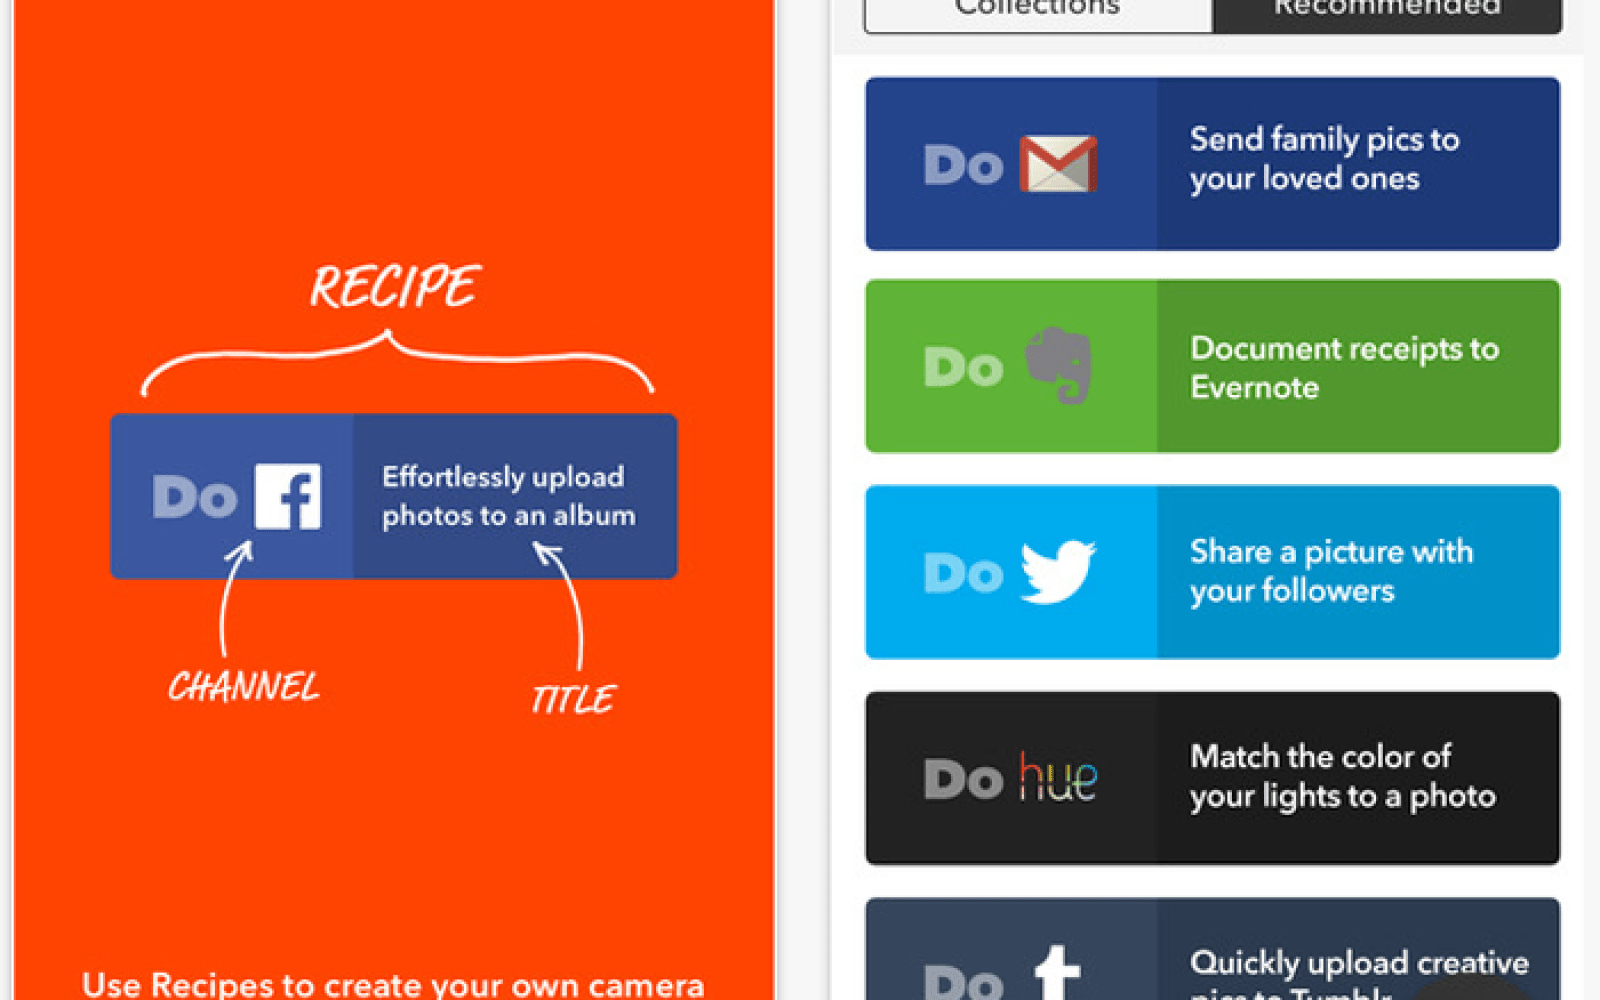 IFTTT simplifies experience with 3 new 'DO' apps; rebrands original app as 'IF'